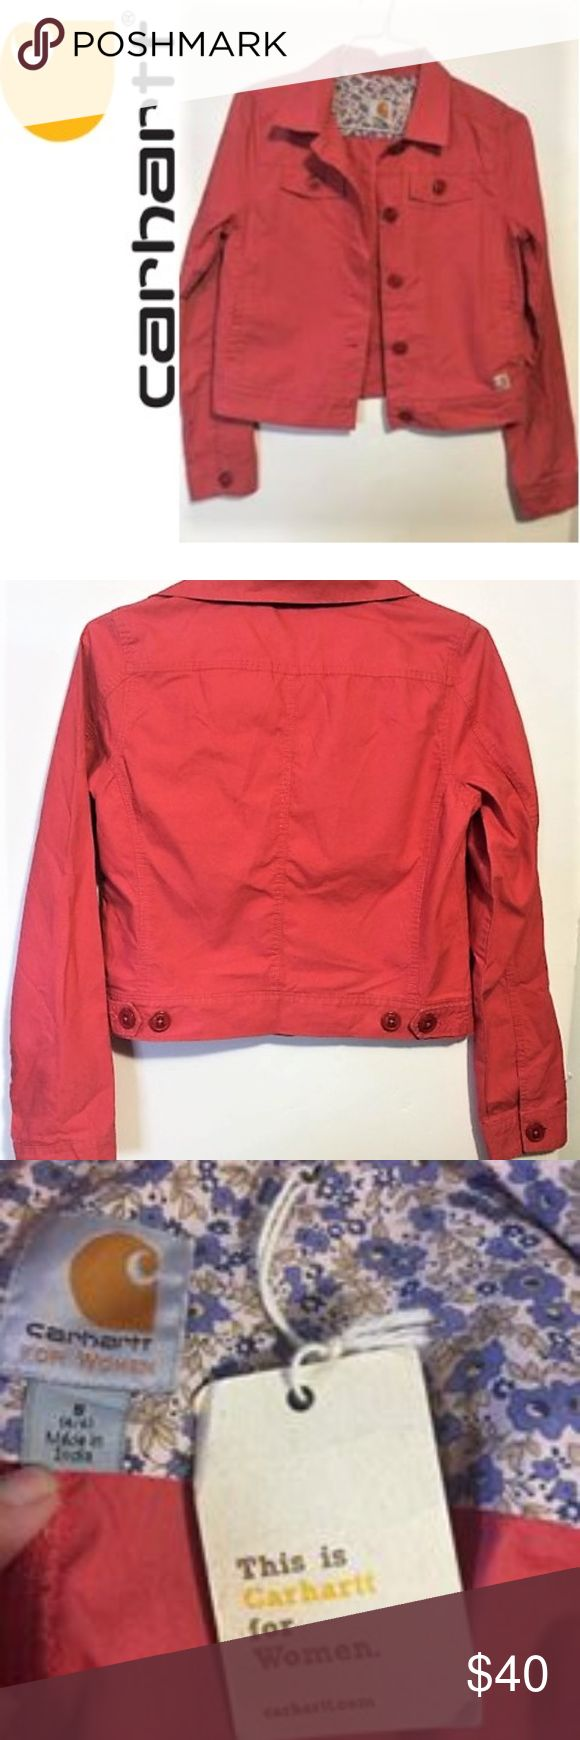 """NWT Carhartt lightweight jacket SZ small NWT Carhartt lightweight jacket in a size small.  Dark coral in color.  featuring four outside pockets and two inside pockets.1.  19"""" pit to pit.  20"""" in length. 100% Cotton. Carhartt Jackets & Coats Jean Jackets"""